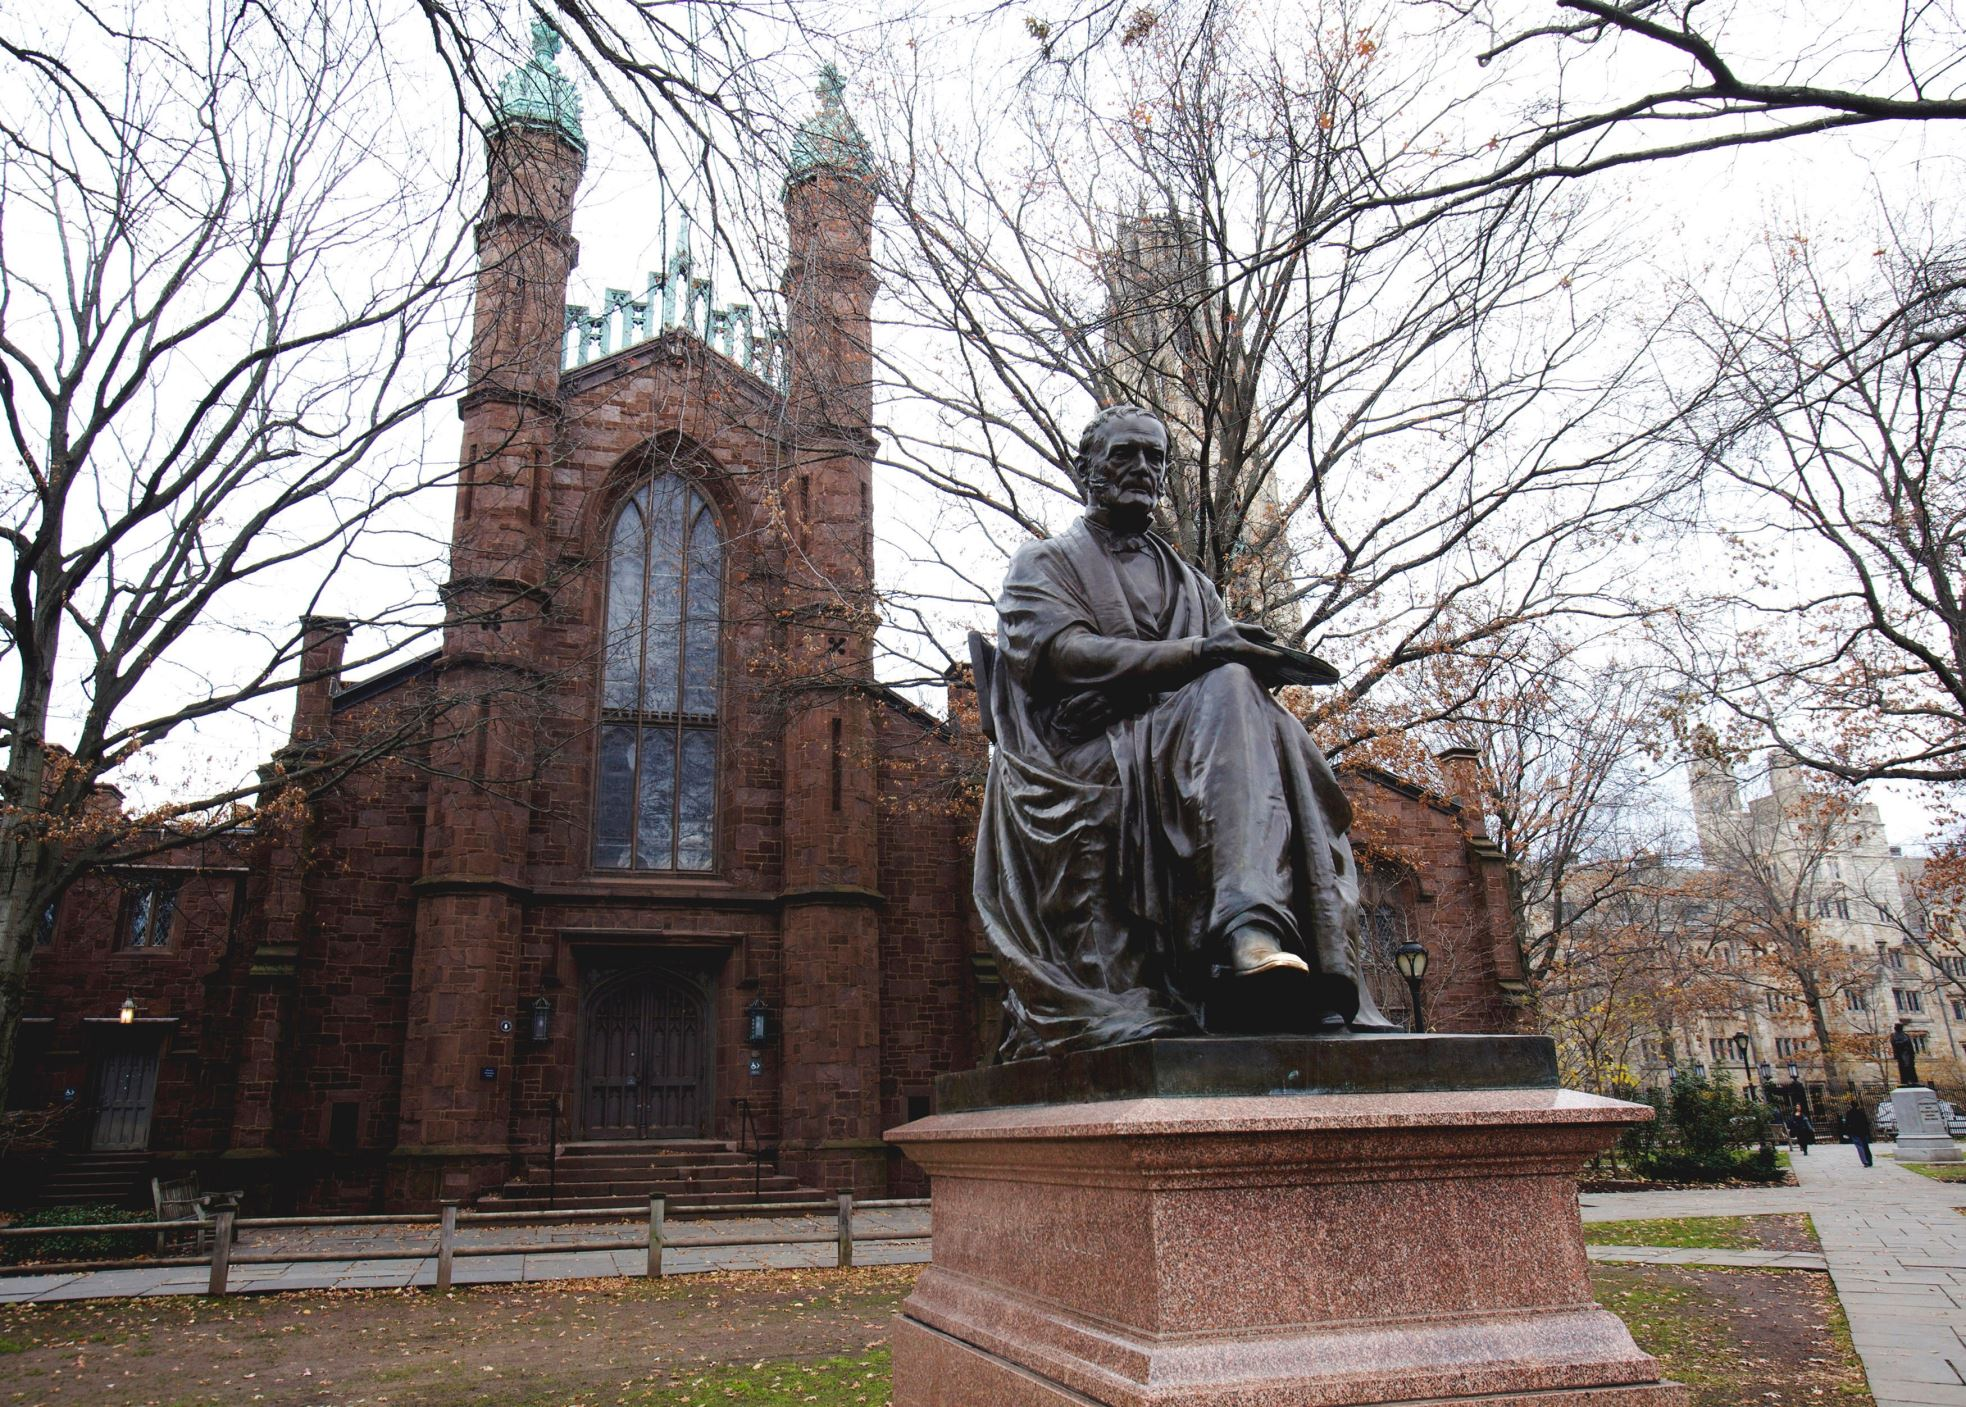 Διαφάνεια 36 από 41: Founded in 1701, Yale is the third oldest institution of higher education in the United States. The university has produced 20 billionaires in total and it is ranked at sixth place in America's Top Colleges by Forbes.